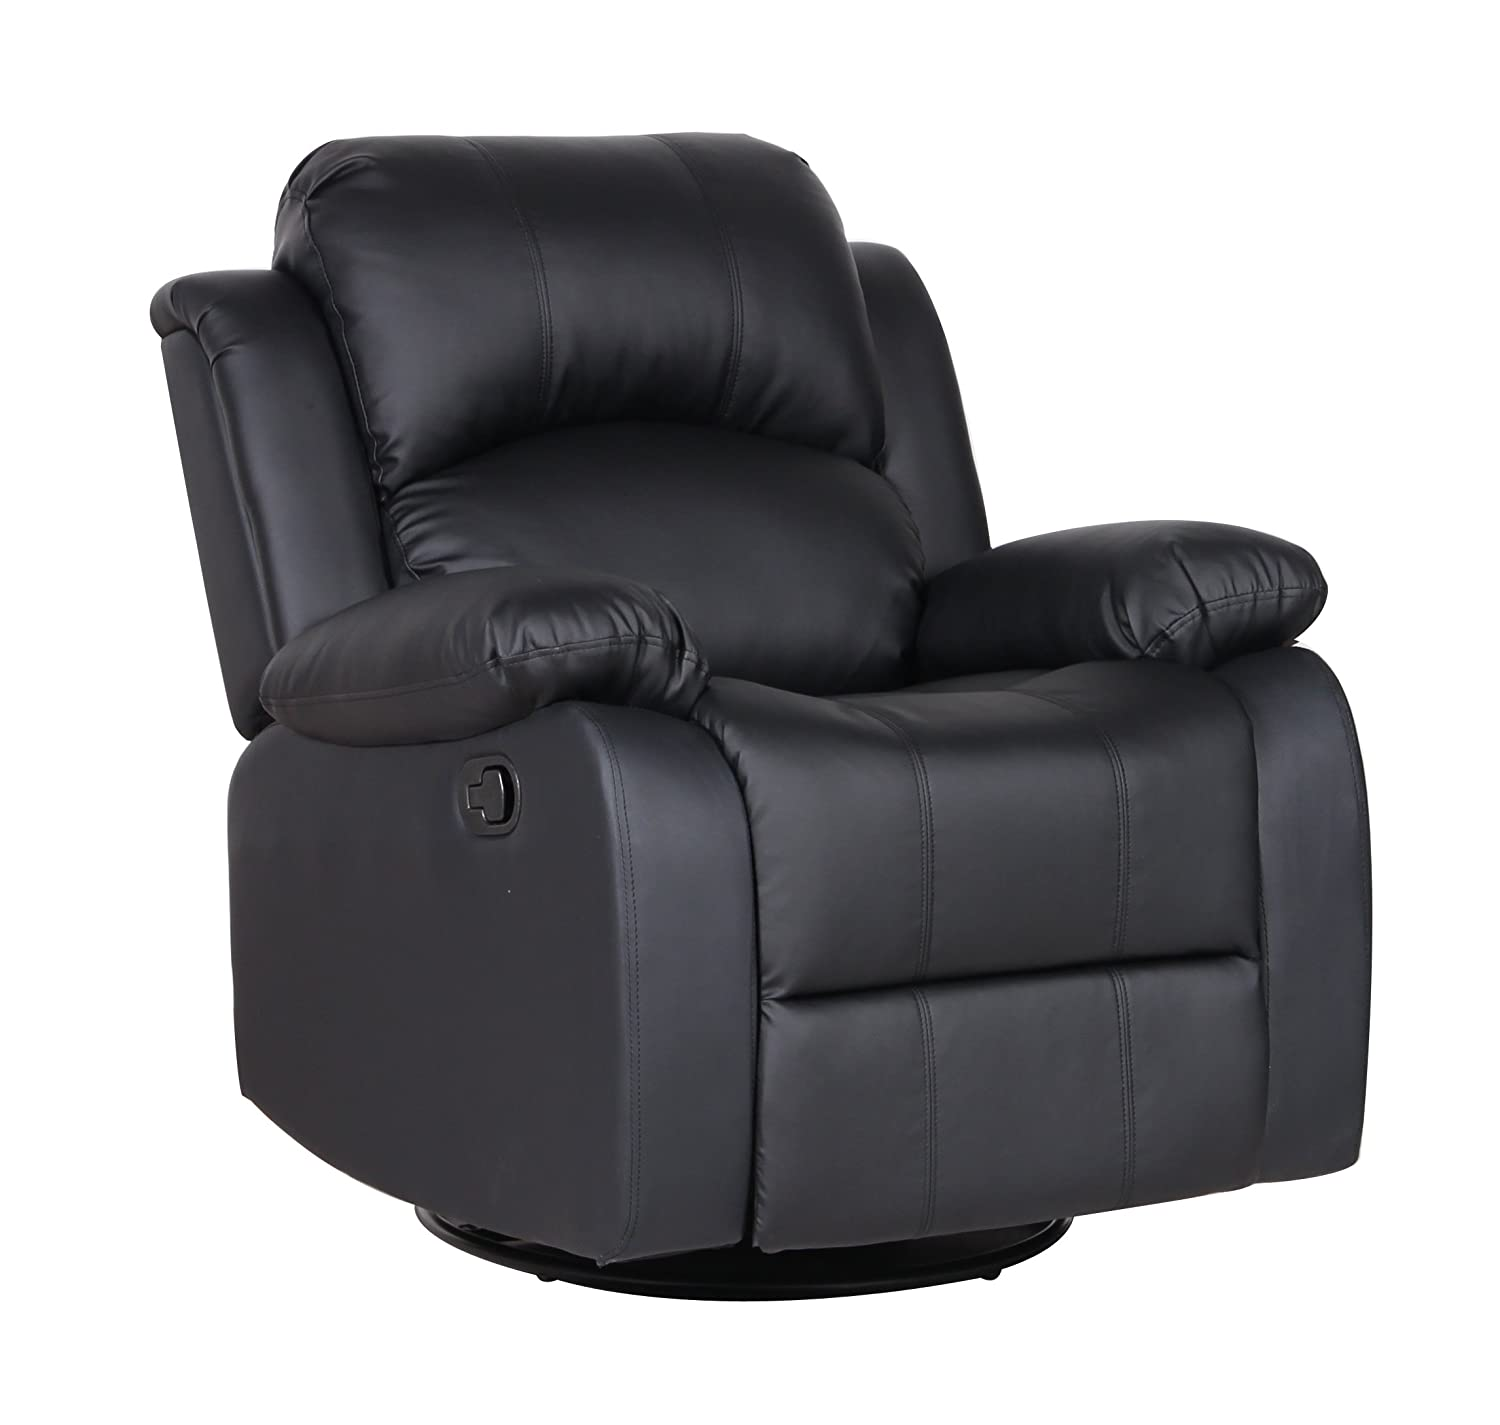 best swivel recliner chairs Archives fortable recliner